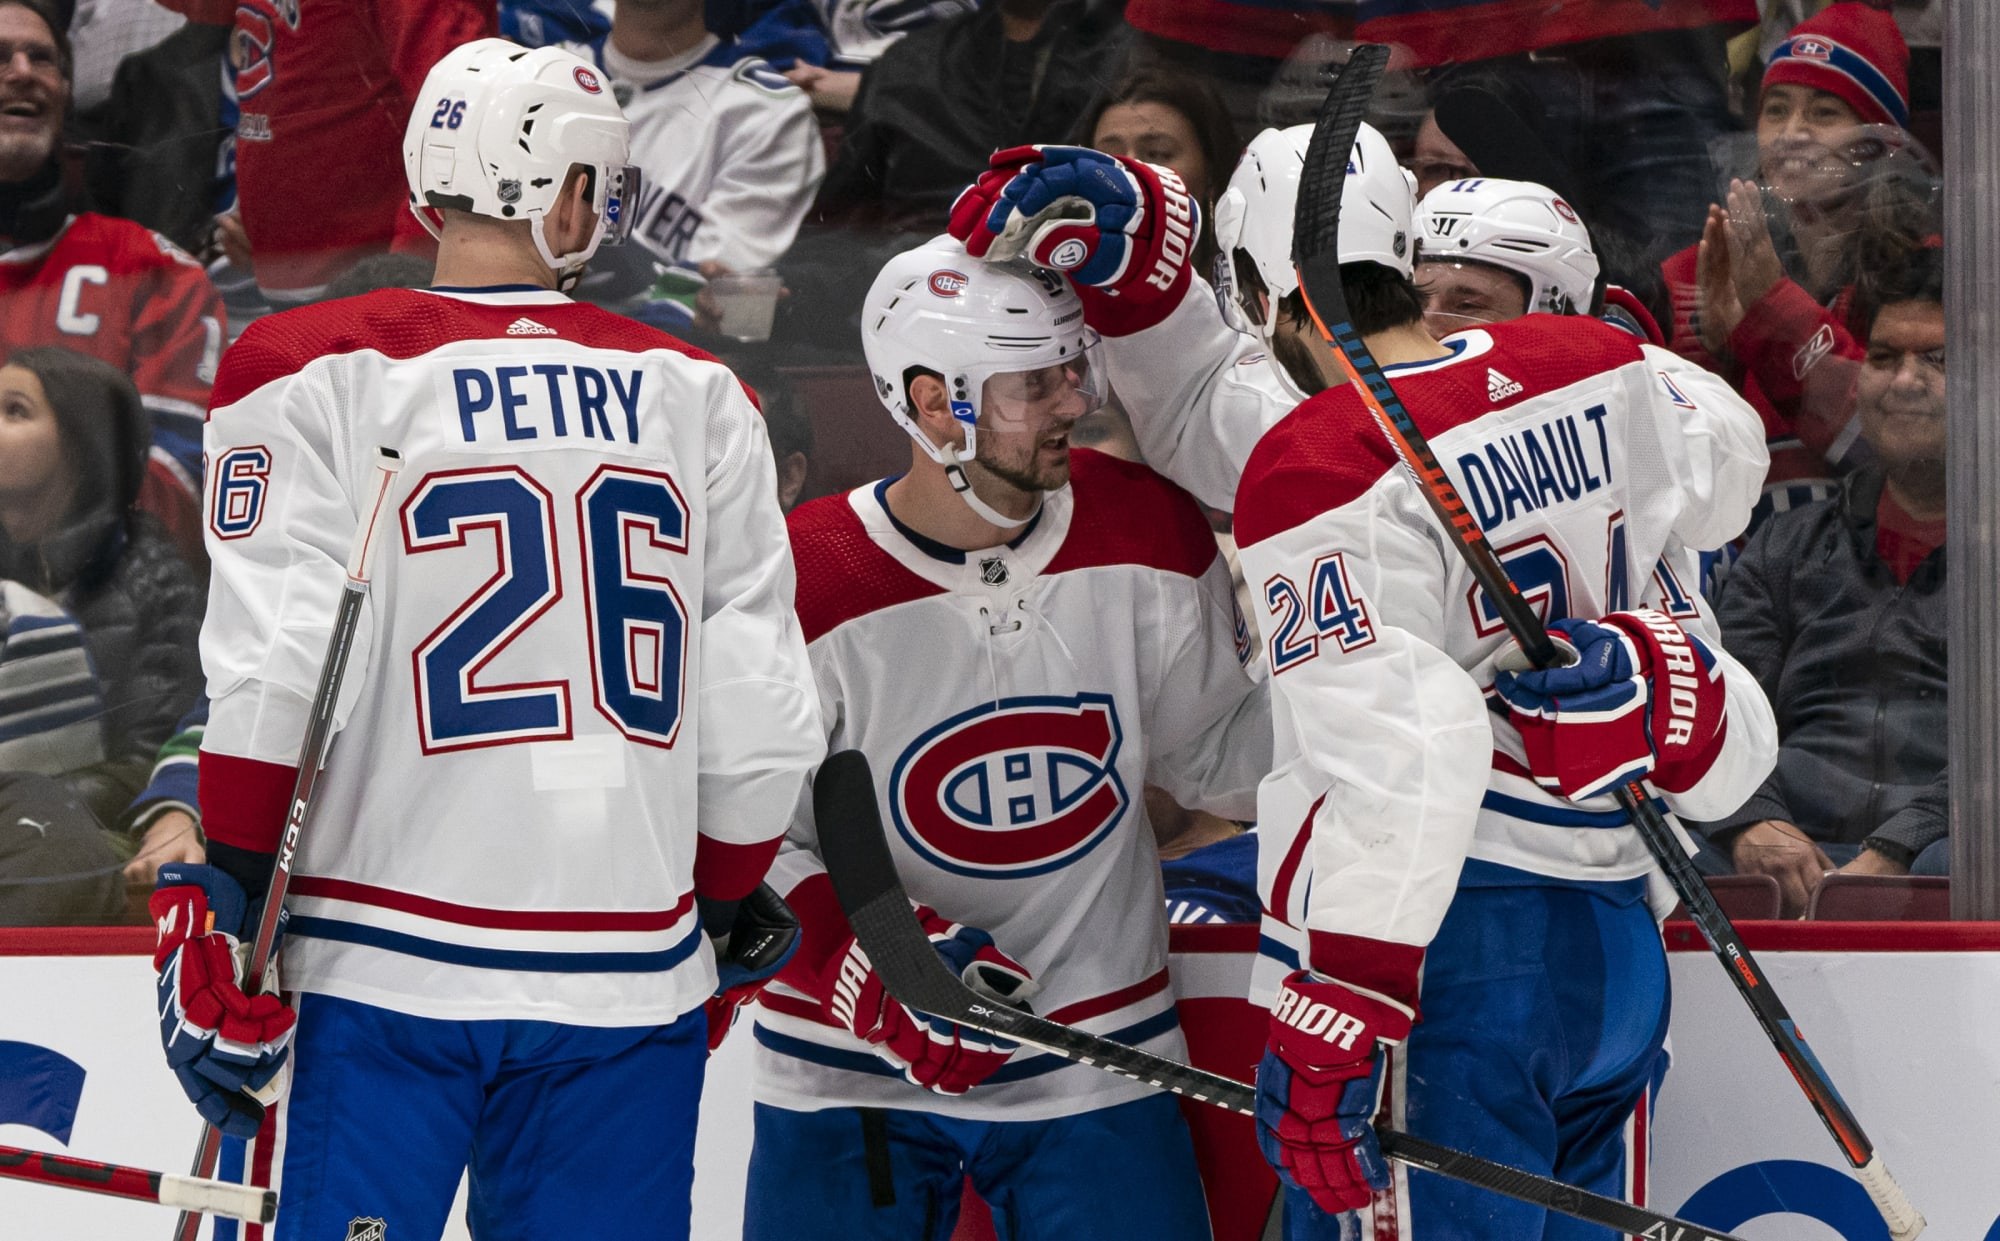 Montreal Canadiens: When Are Habs Allowed To Re-Sign Players With One Year Left?